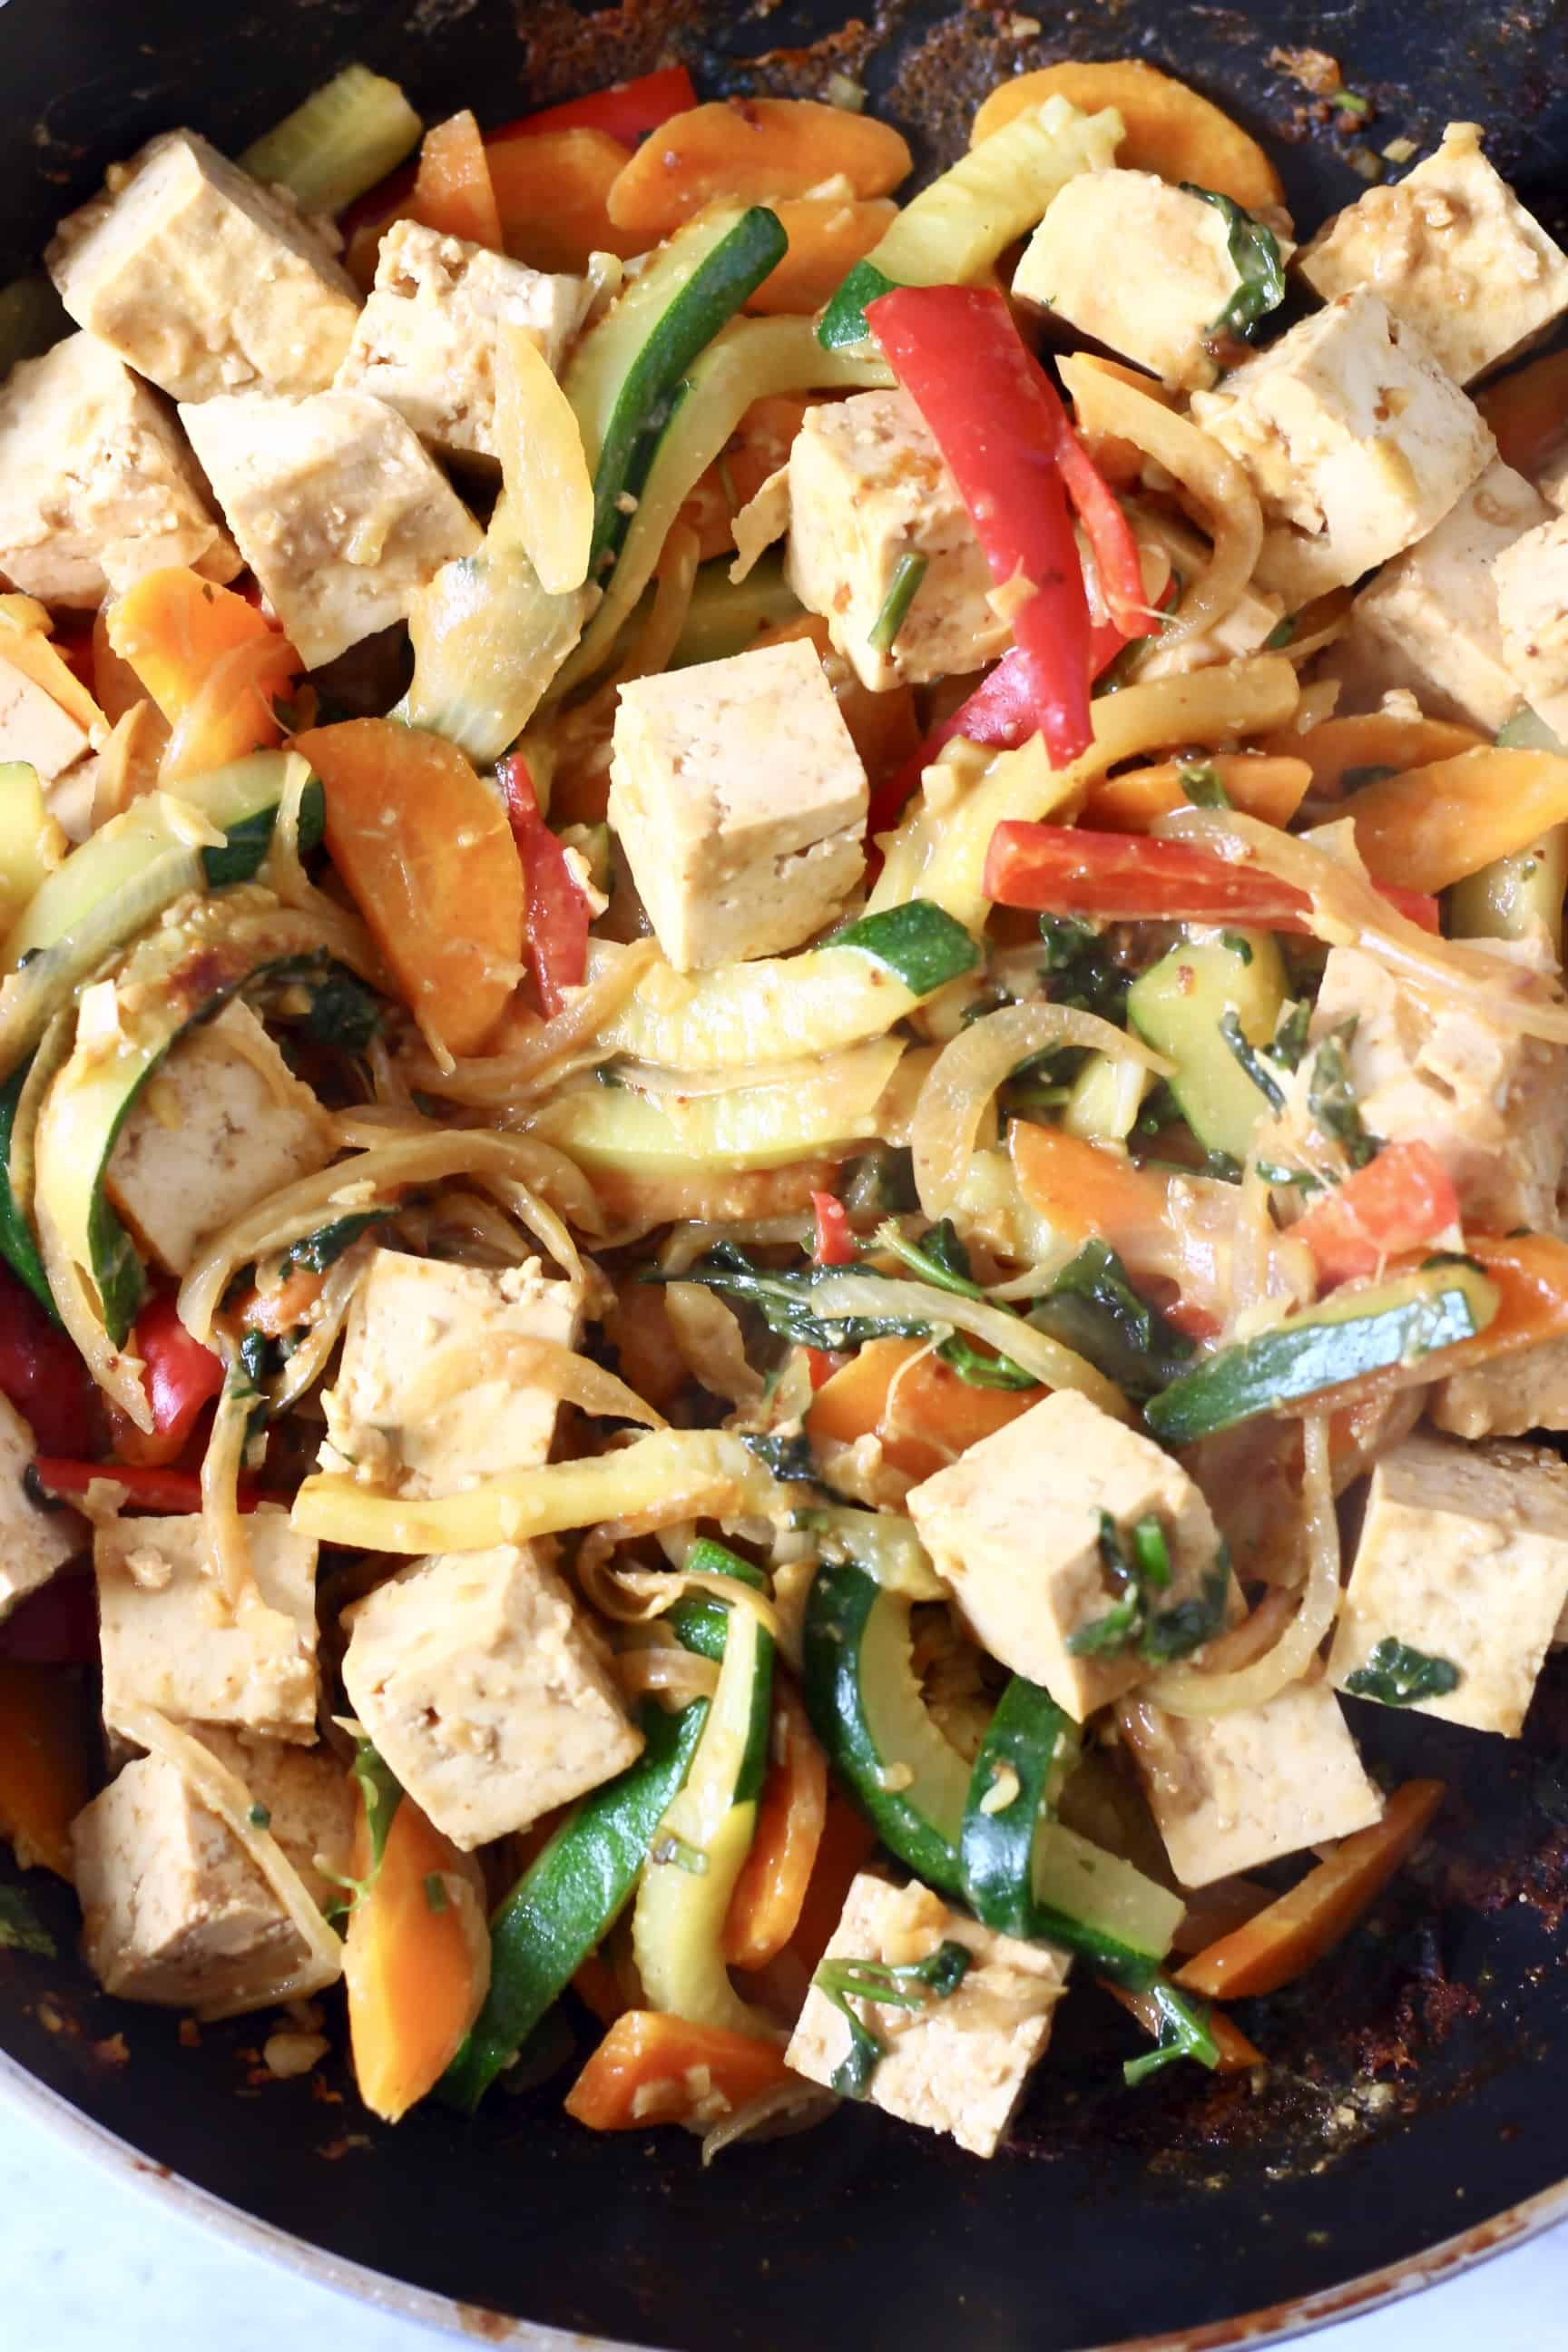 Chopped vegetables and tofu cubes in a frying pan